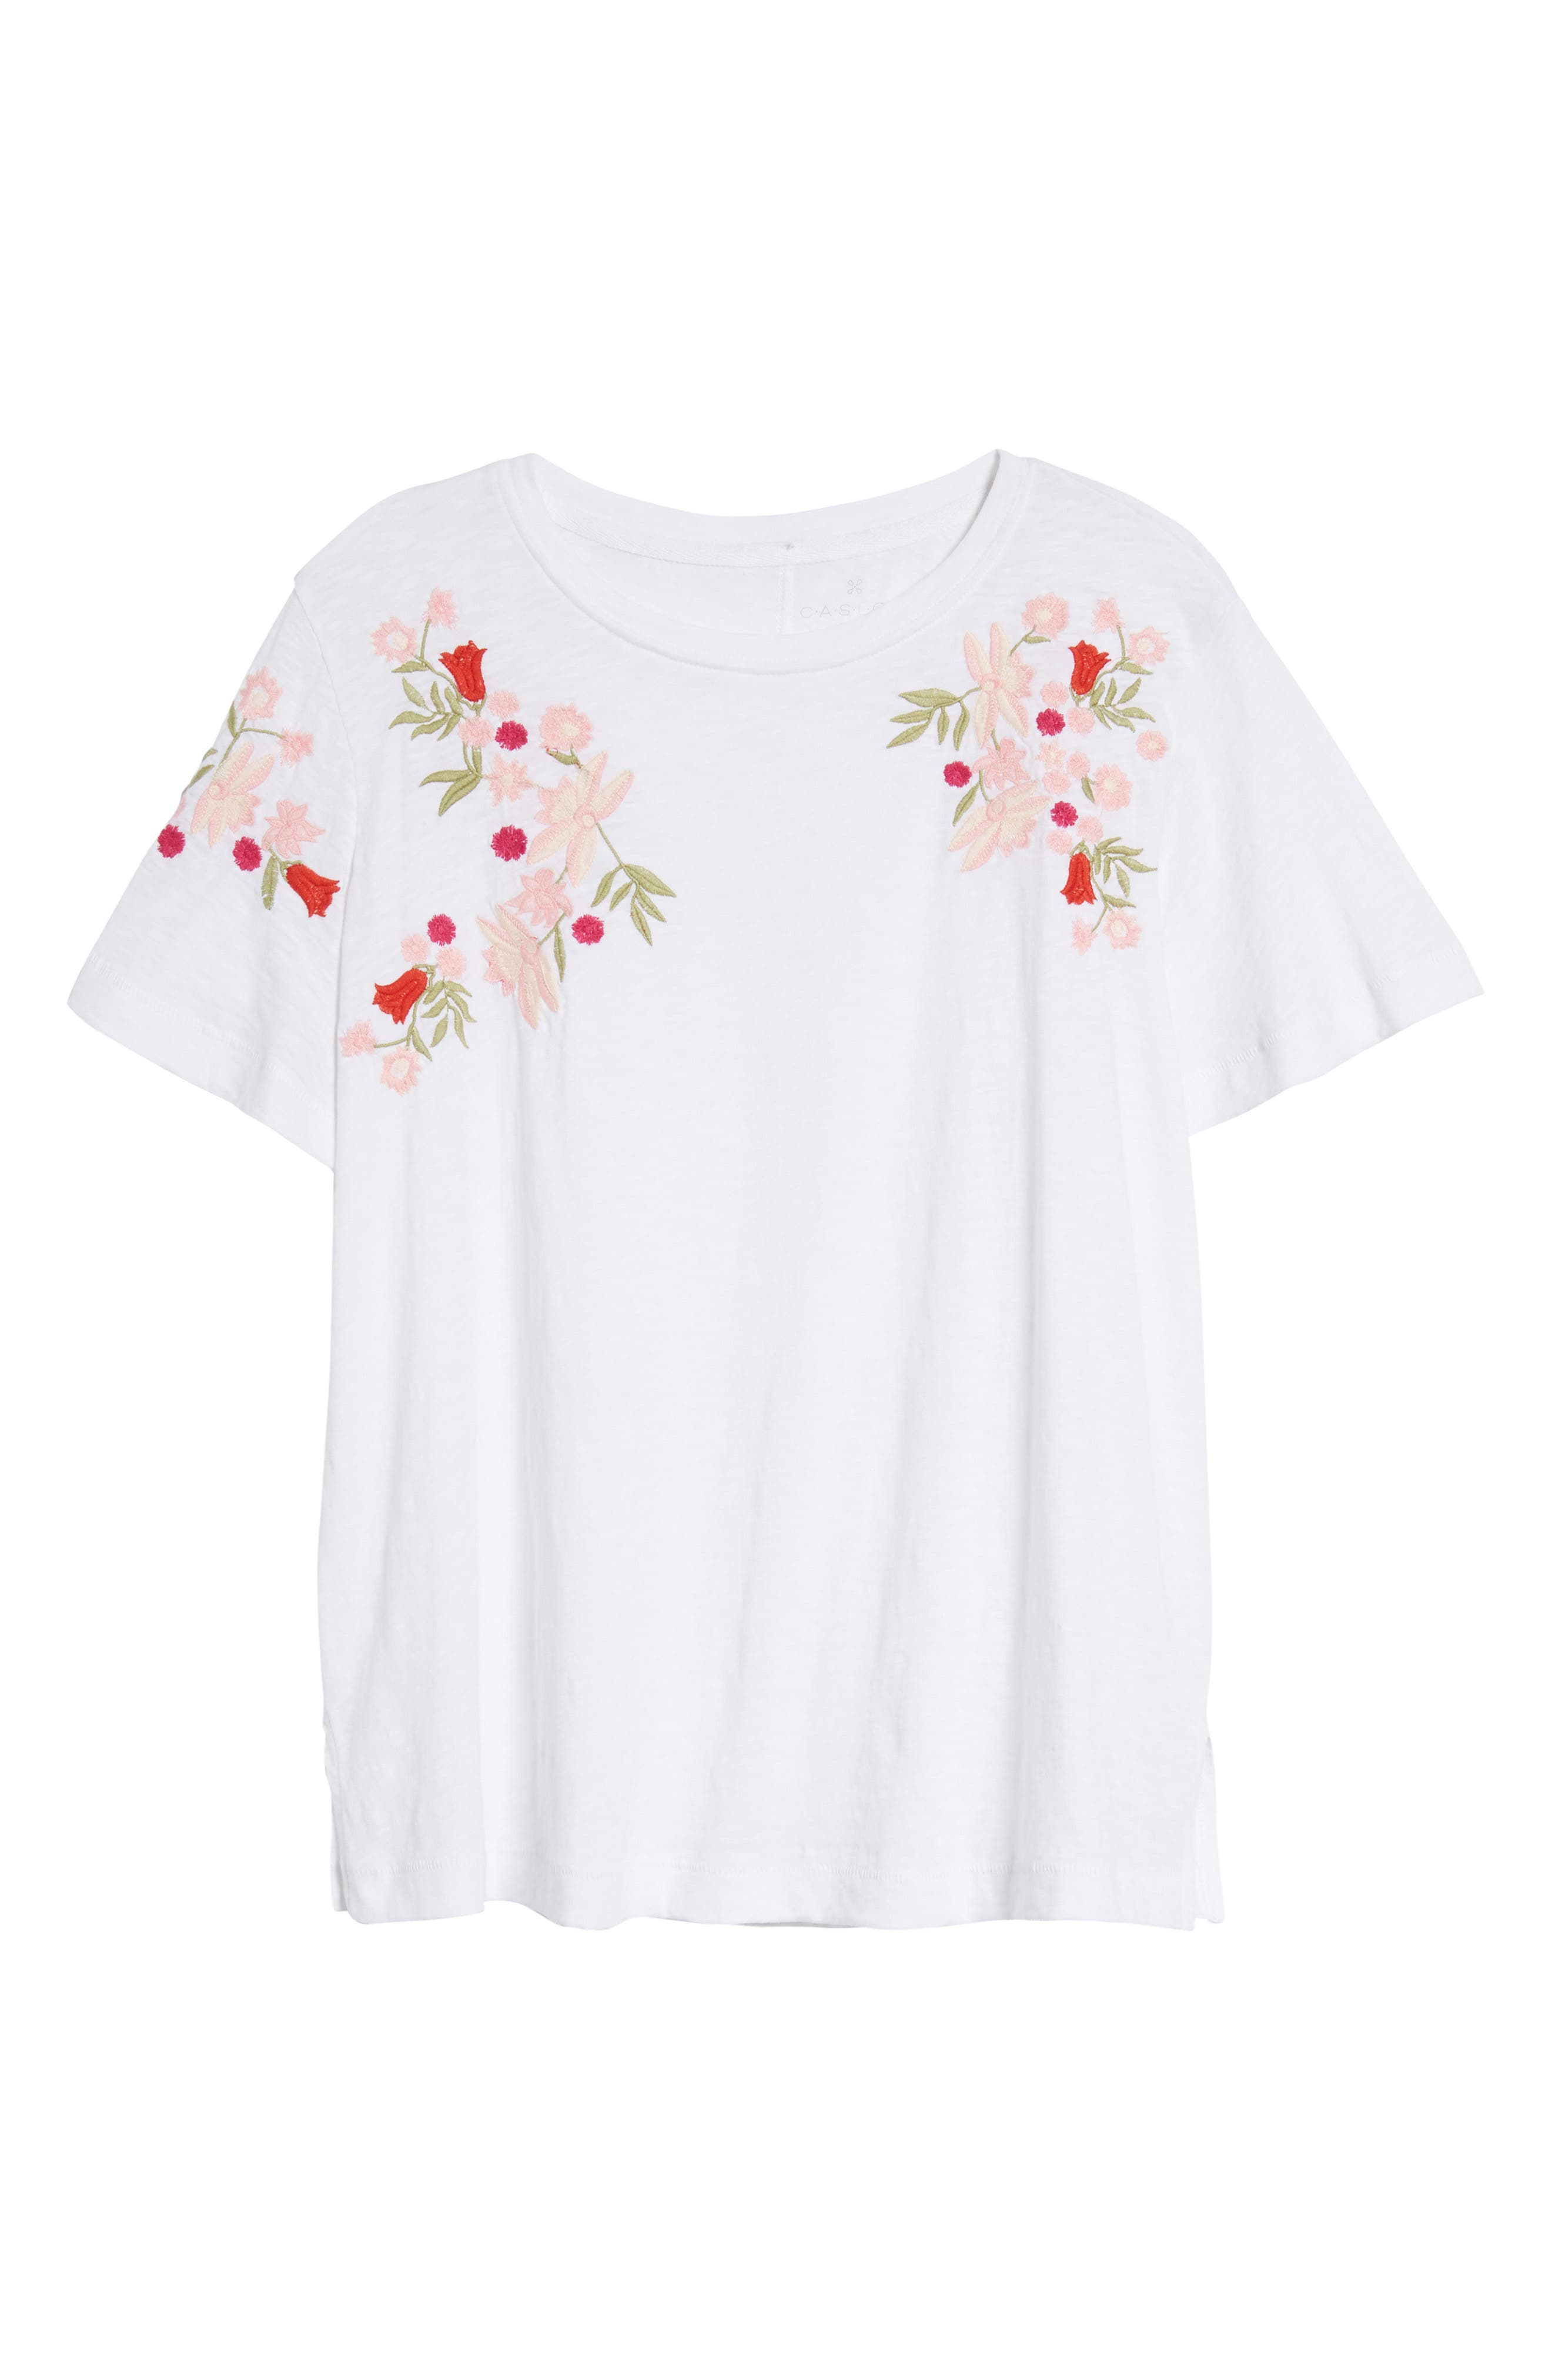 Embroidered Tee,                             Alternate thumbnail 7, color,                             101